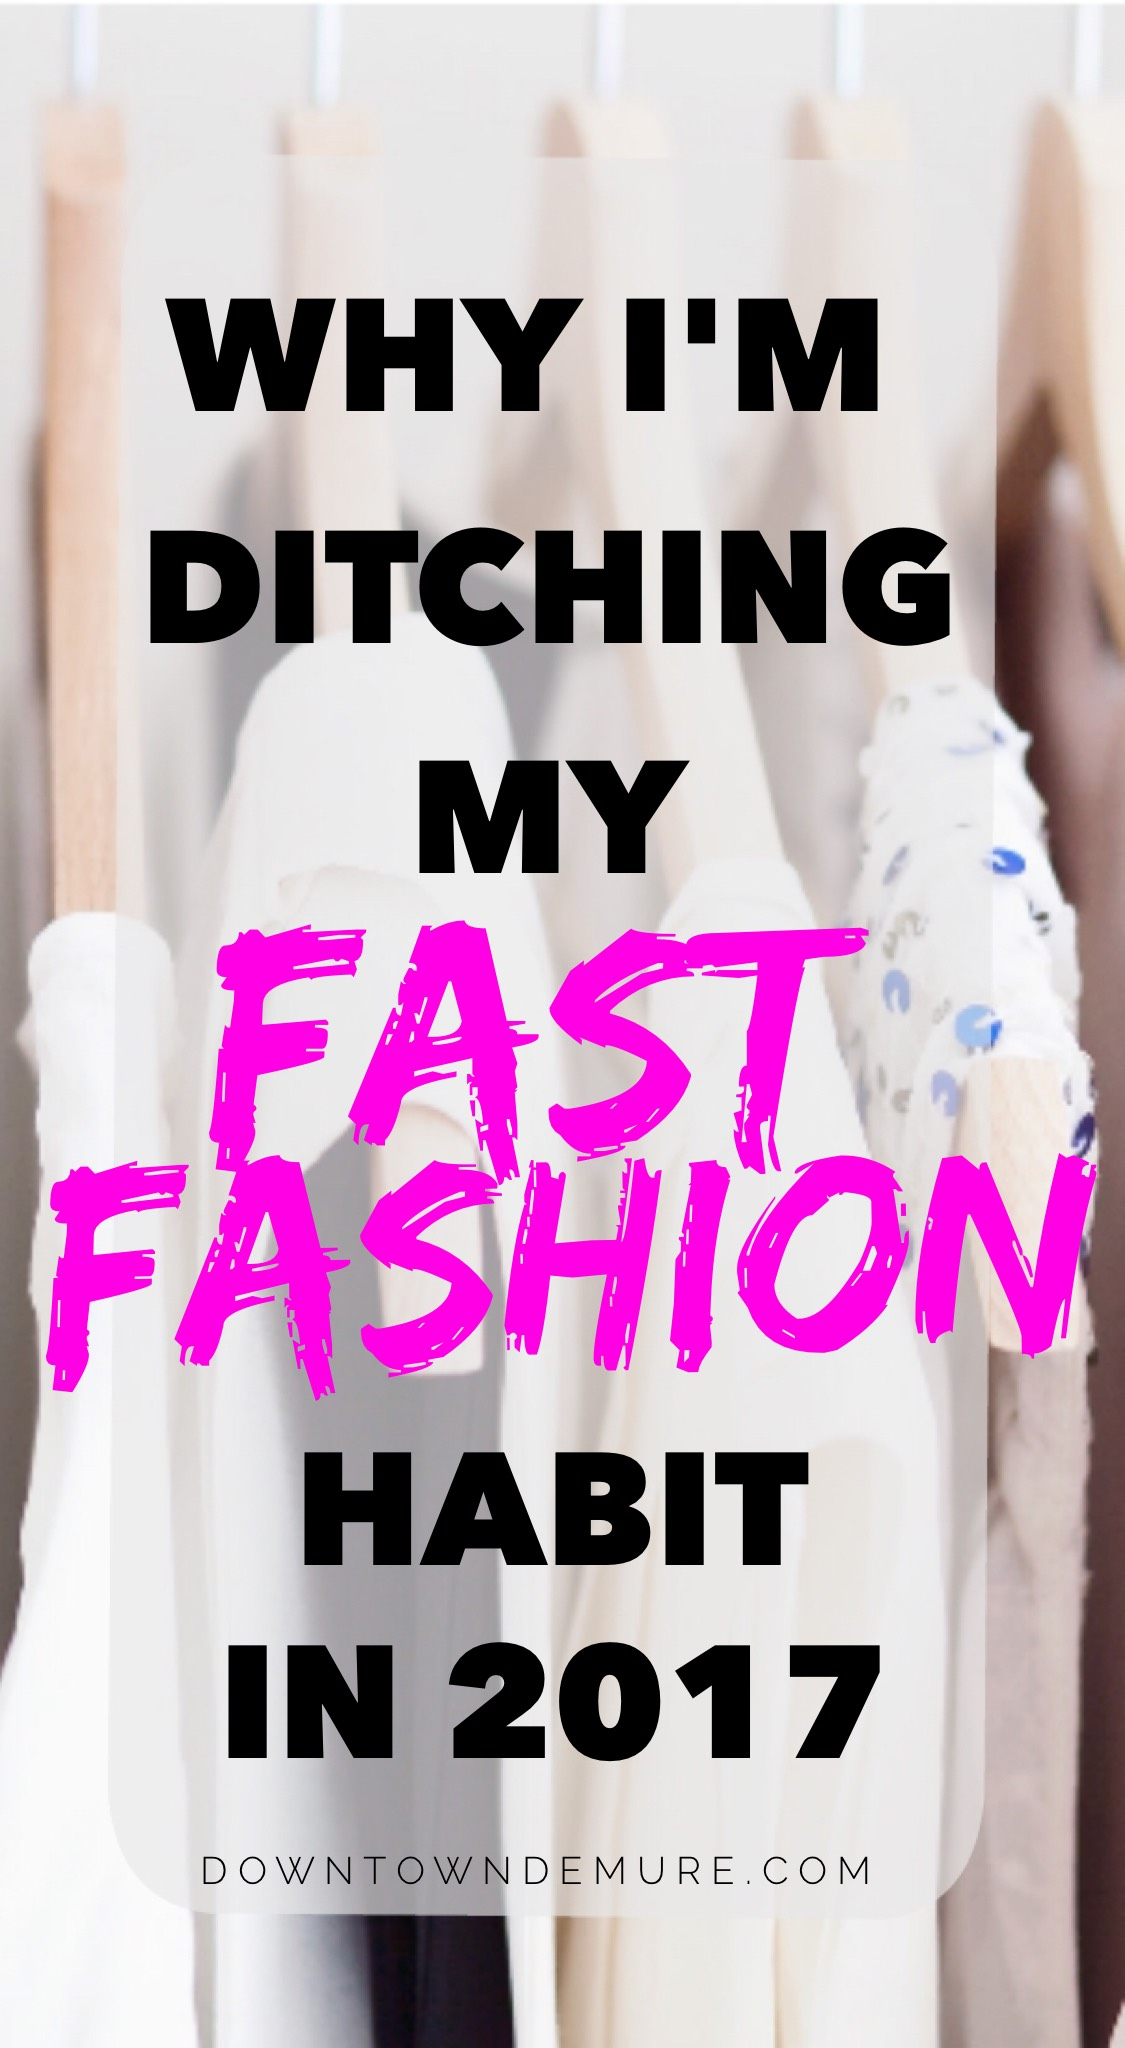 why im ditching my fast fashion habit in 2017 via downtowndemure.com a modest fashion blog